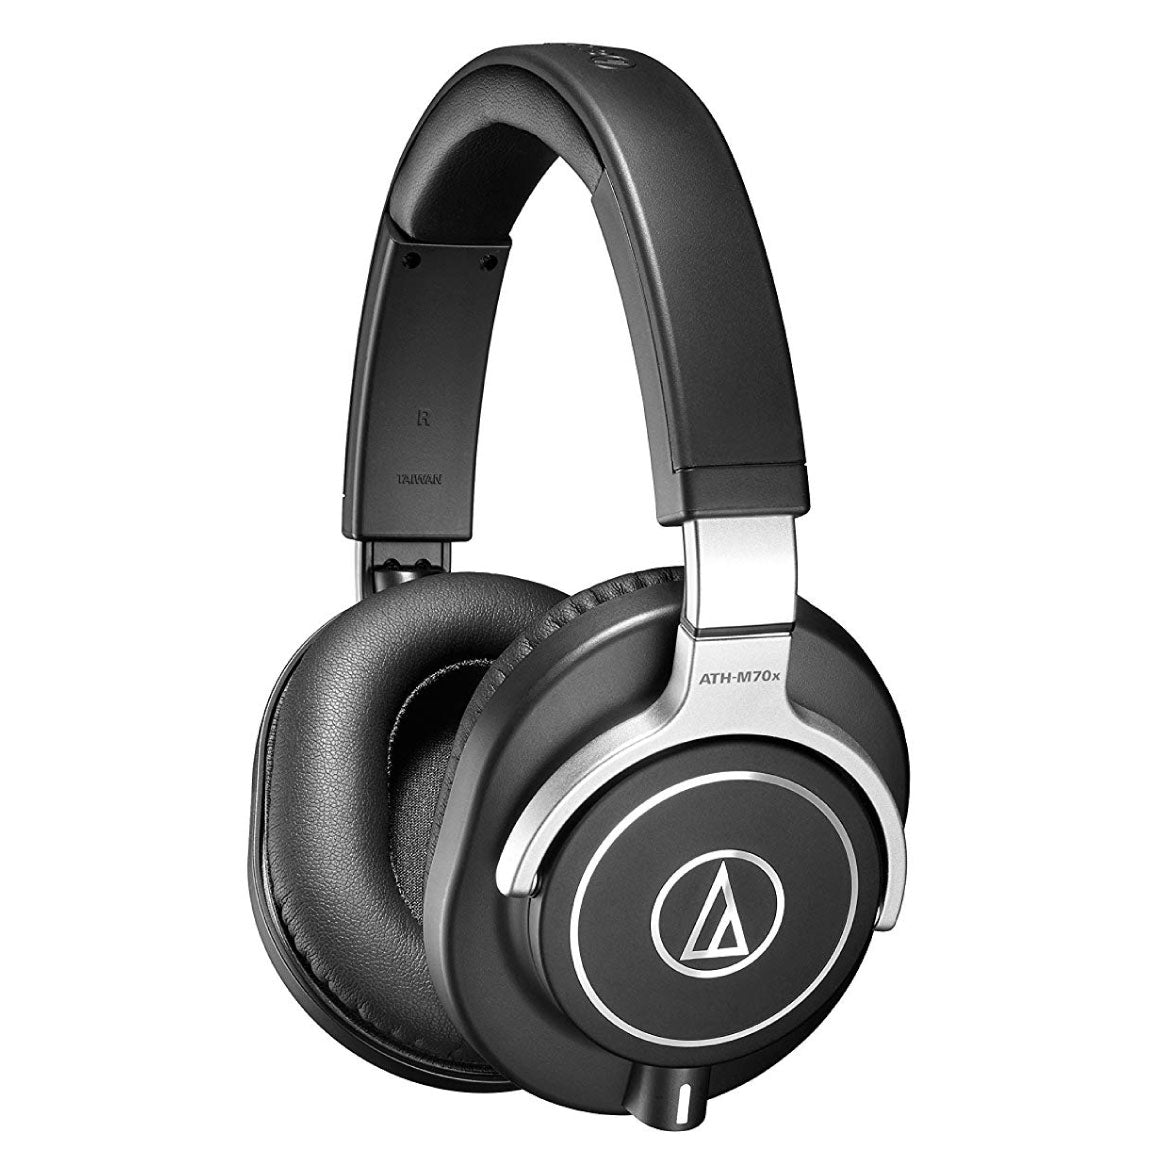 Audio-Technica - ATH-M70x vs competitors